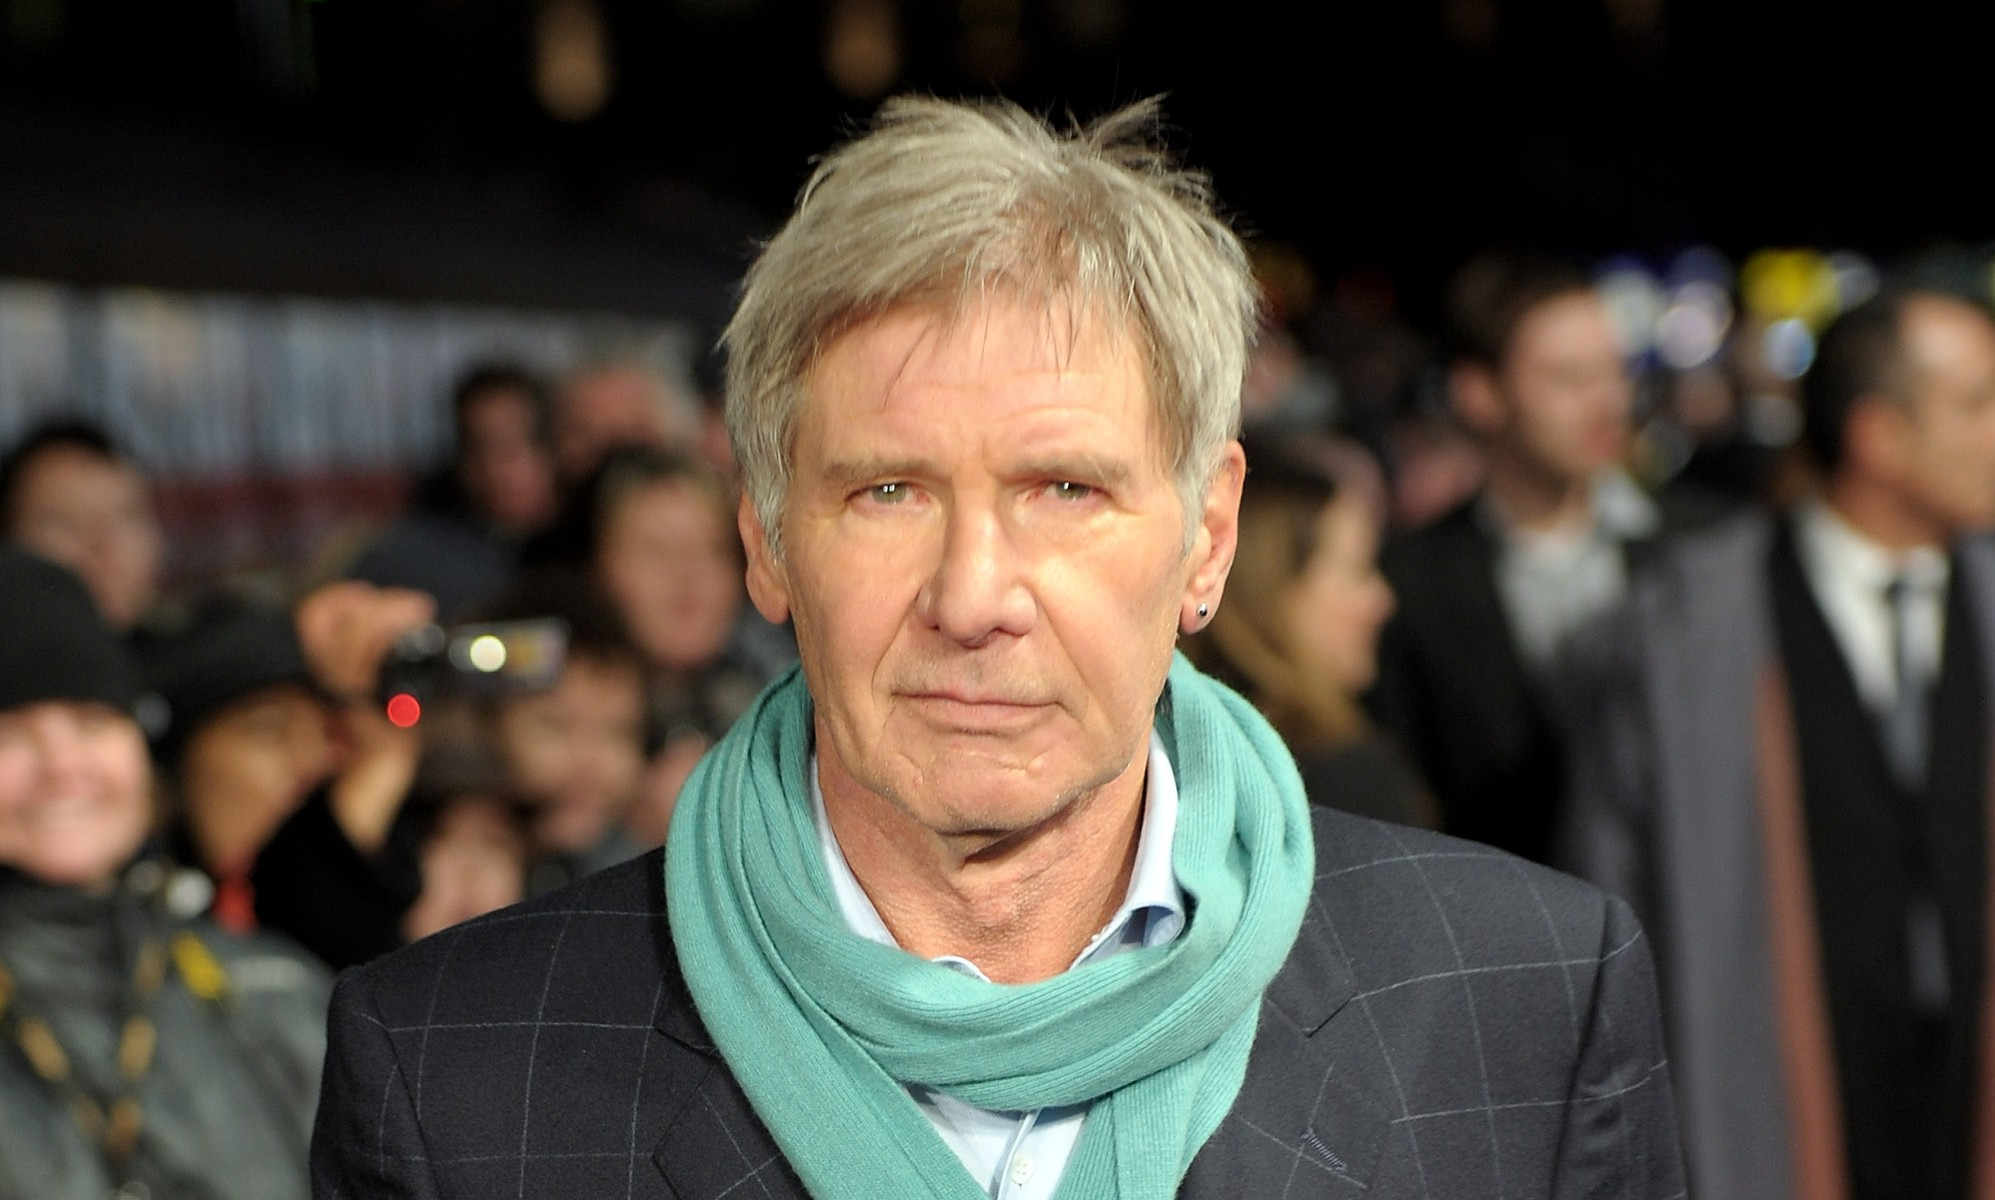 Harrison Ford 'joins Anchorman 2: The Legend Continues cast'